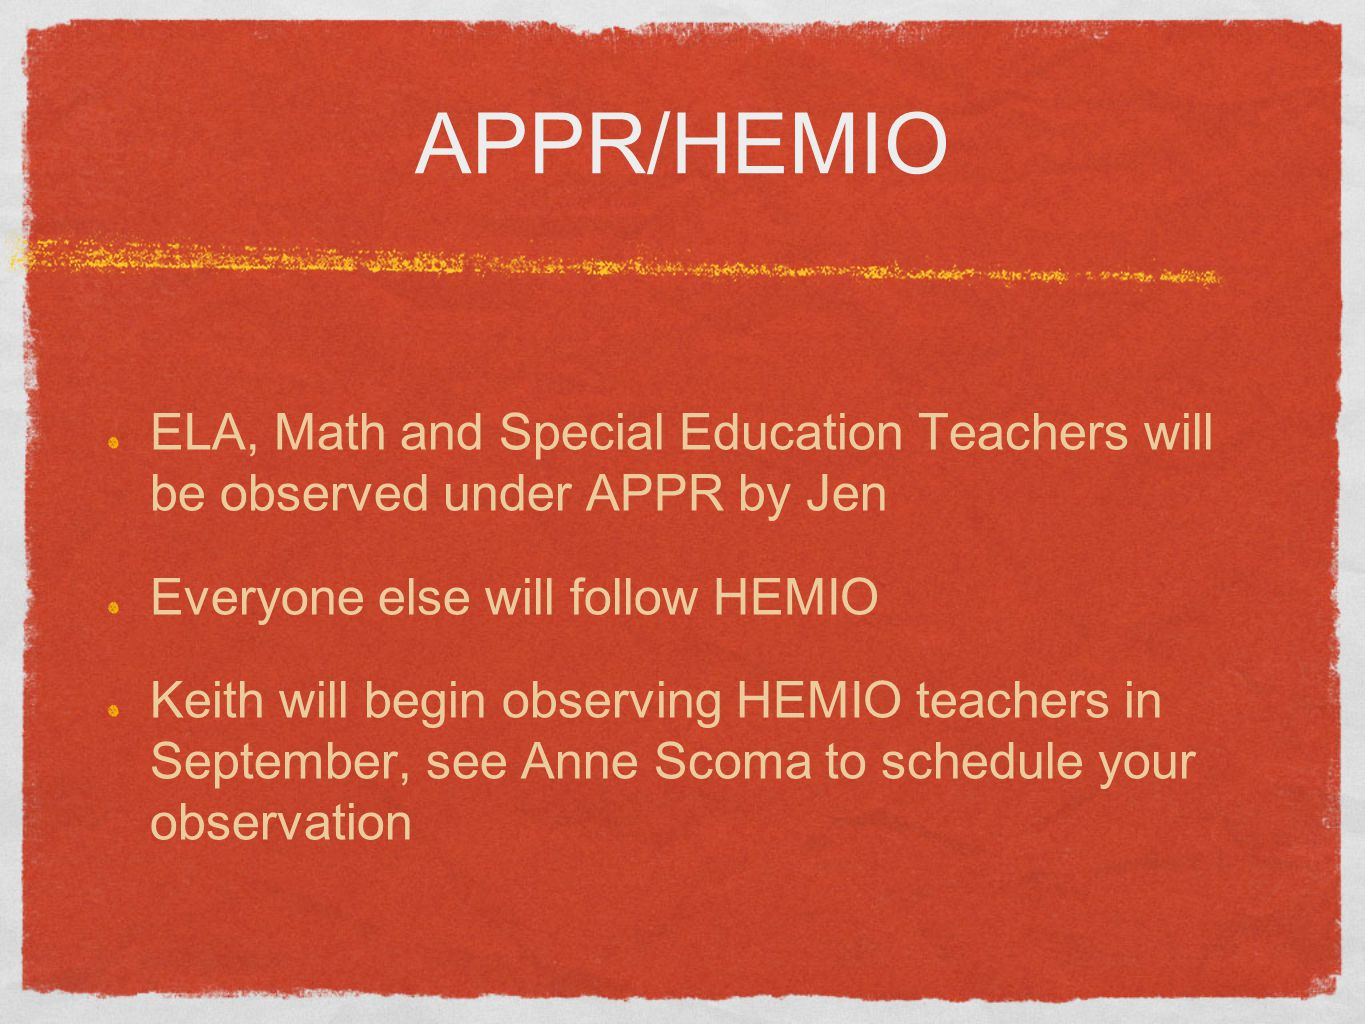 APPR/HEMIO ELA, Math and Special Education Teachers will be observed under APPR by Jen Everyone else will follow HEMIO Keith will begin observing HEMIO teachers in September, see Anne Scoma to schedule your observation